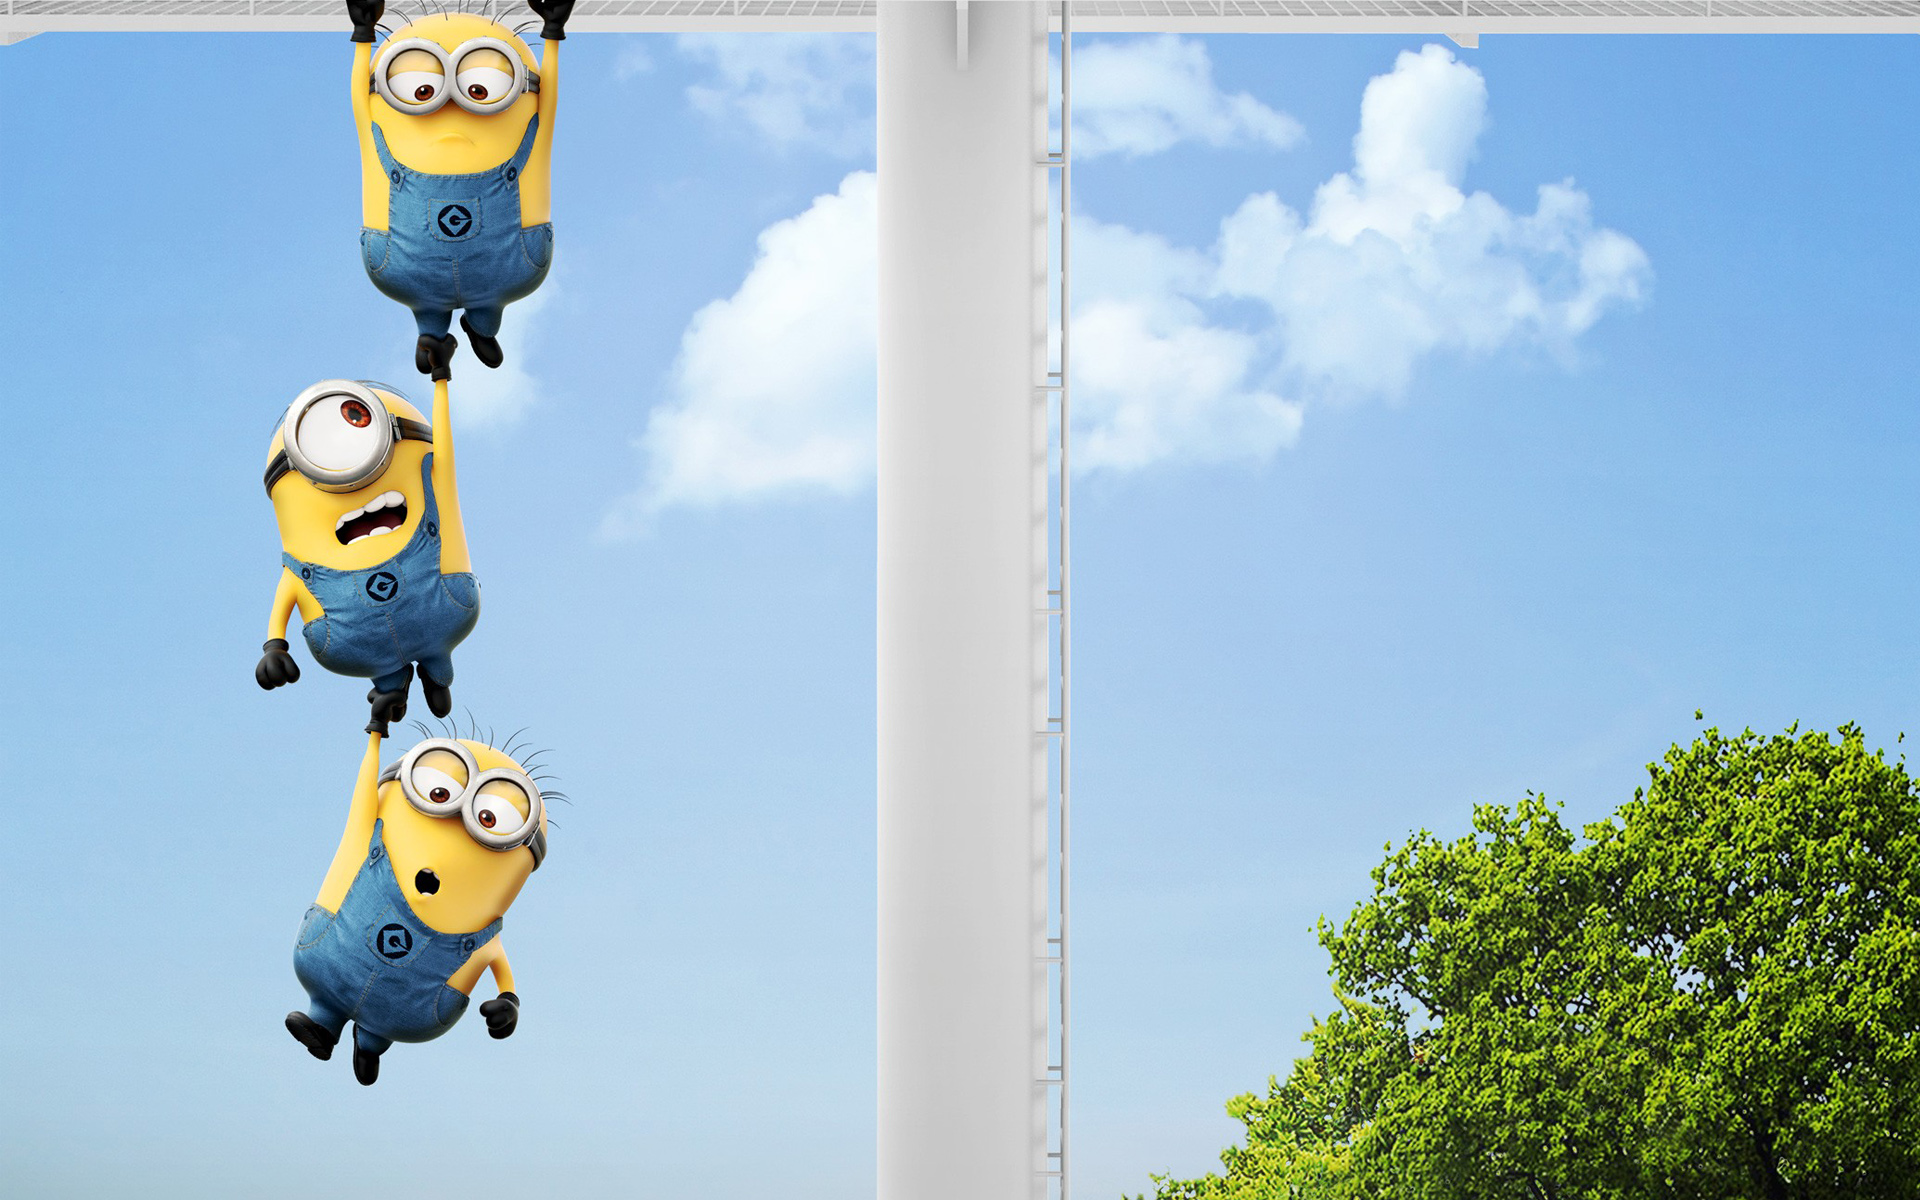 minions-Funny-Despicable-Me-Funny-Minions-HD-wallpaper-wpc9007685